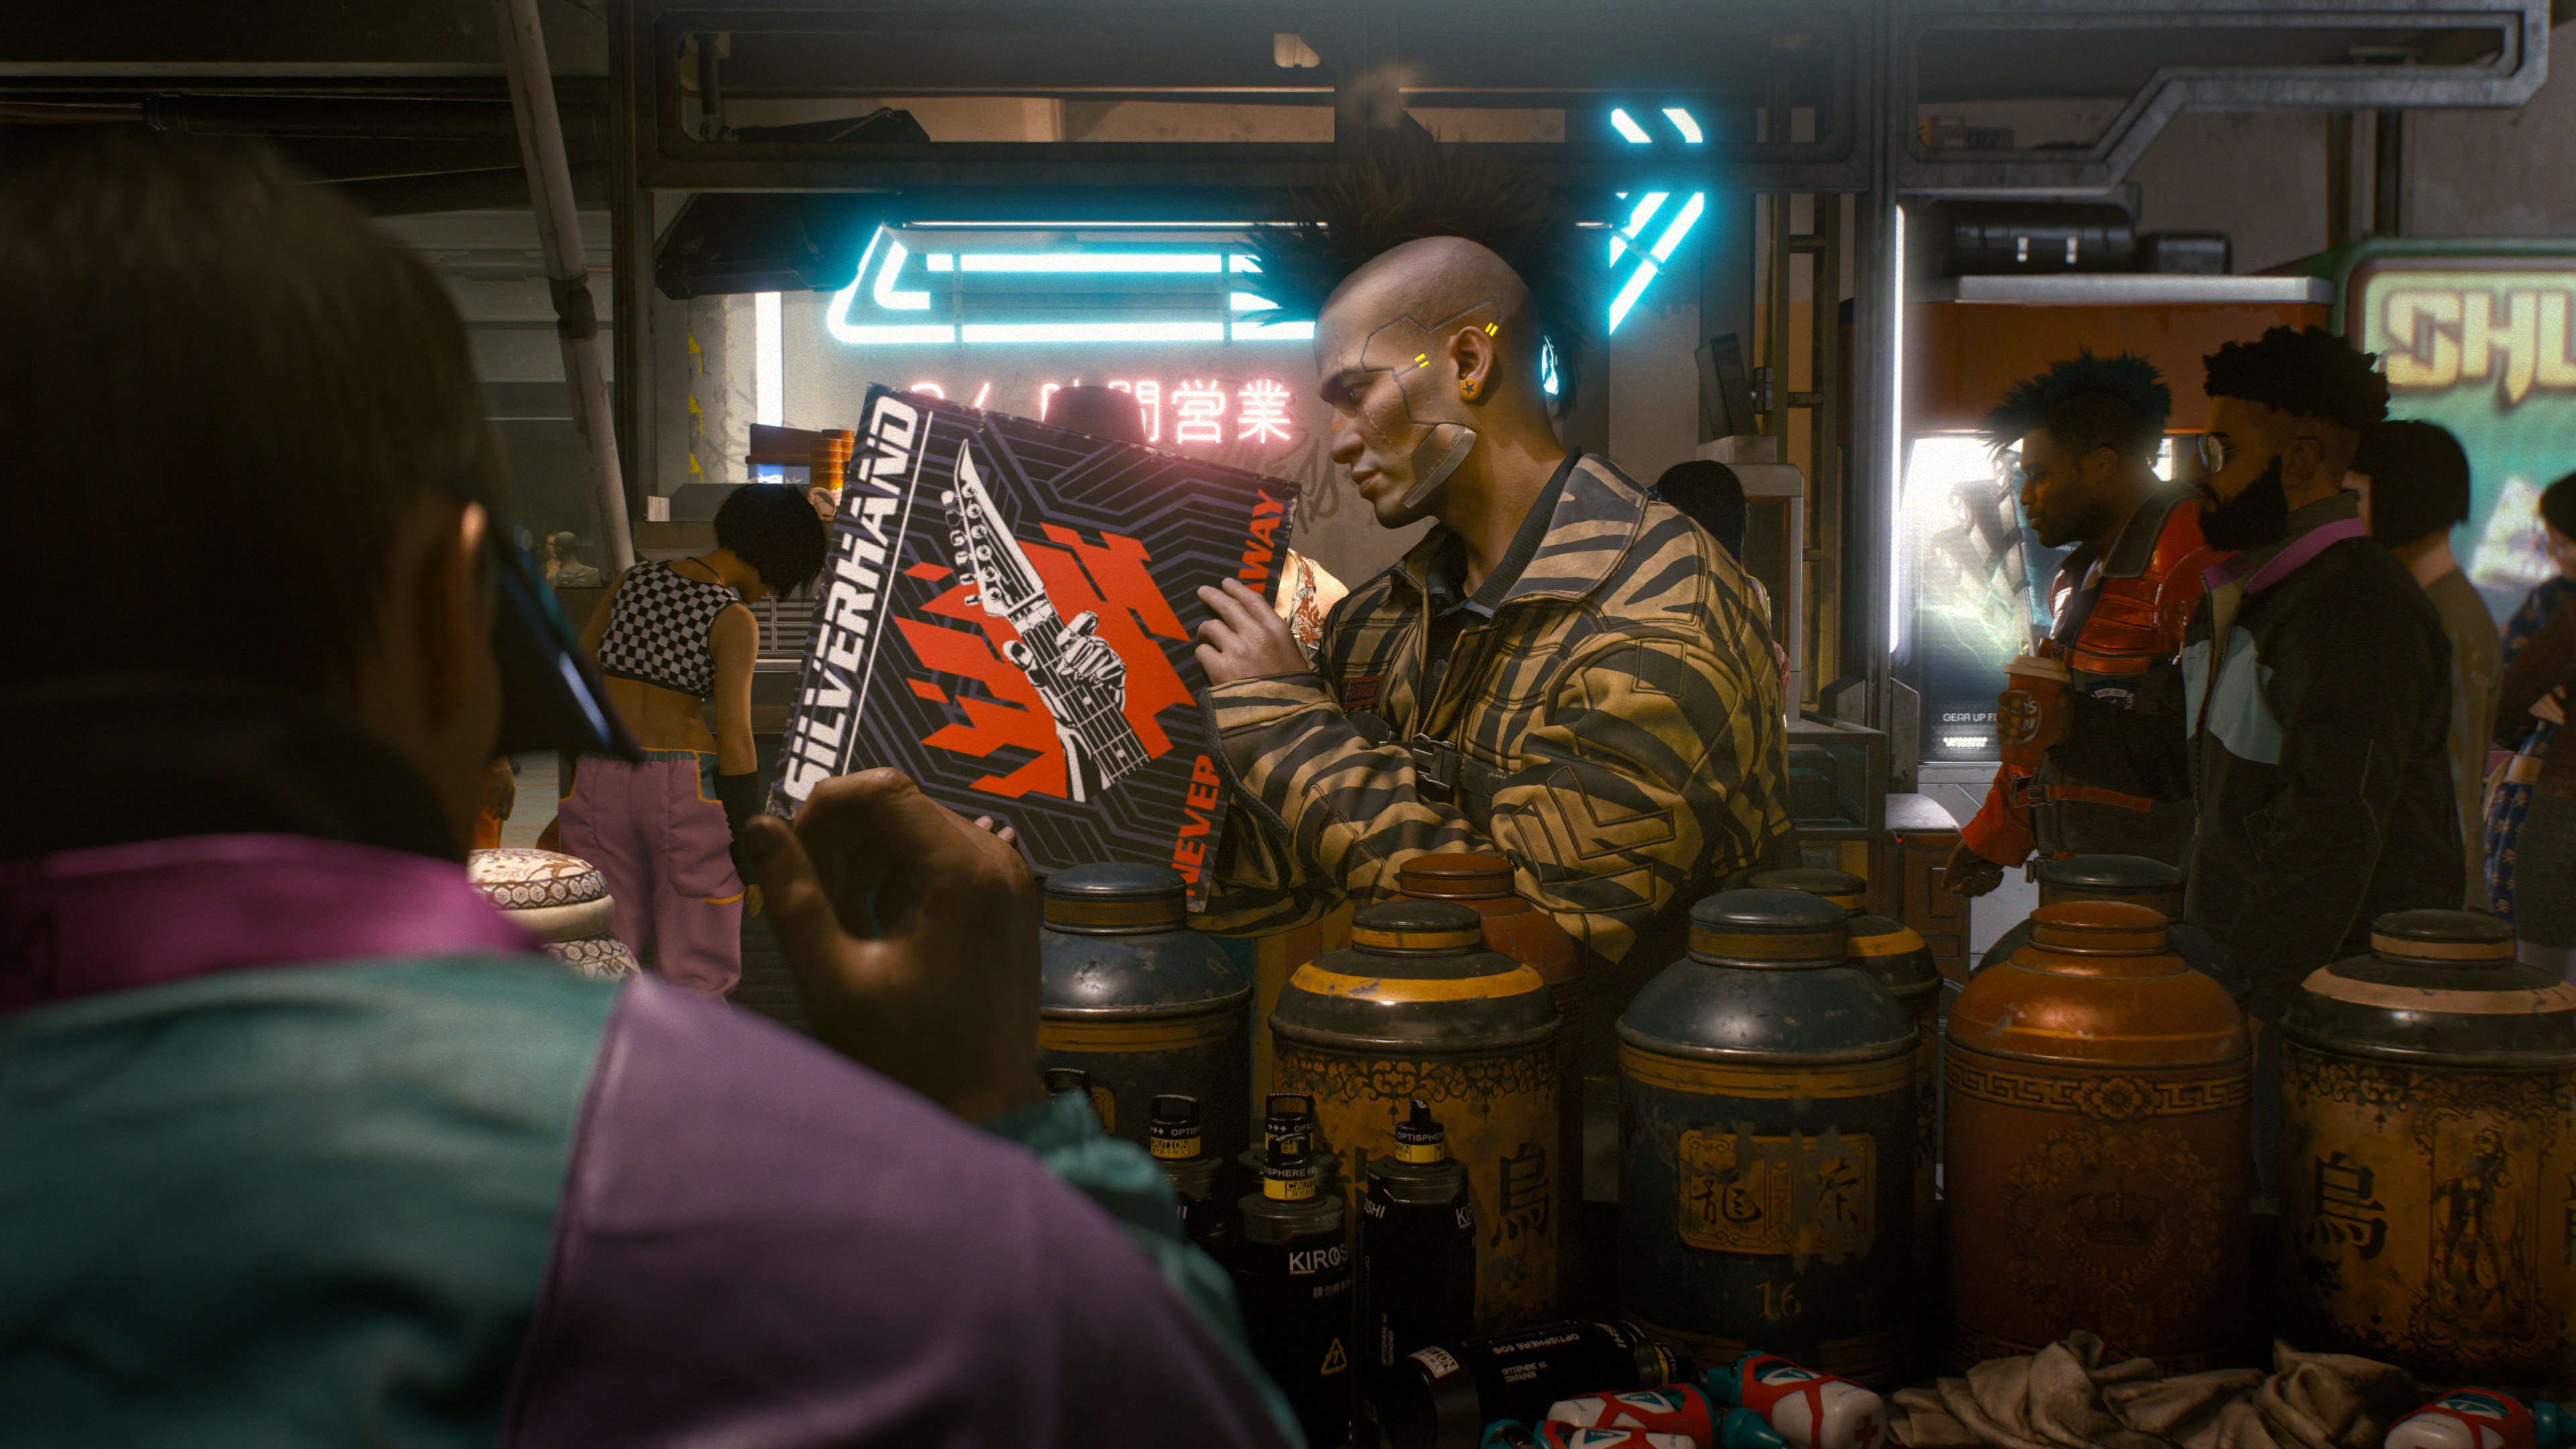 Cyberpunk 2077: Release date, gameplay, and everything we know so far | PC  Gamer